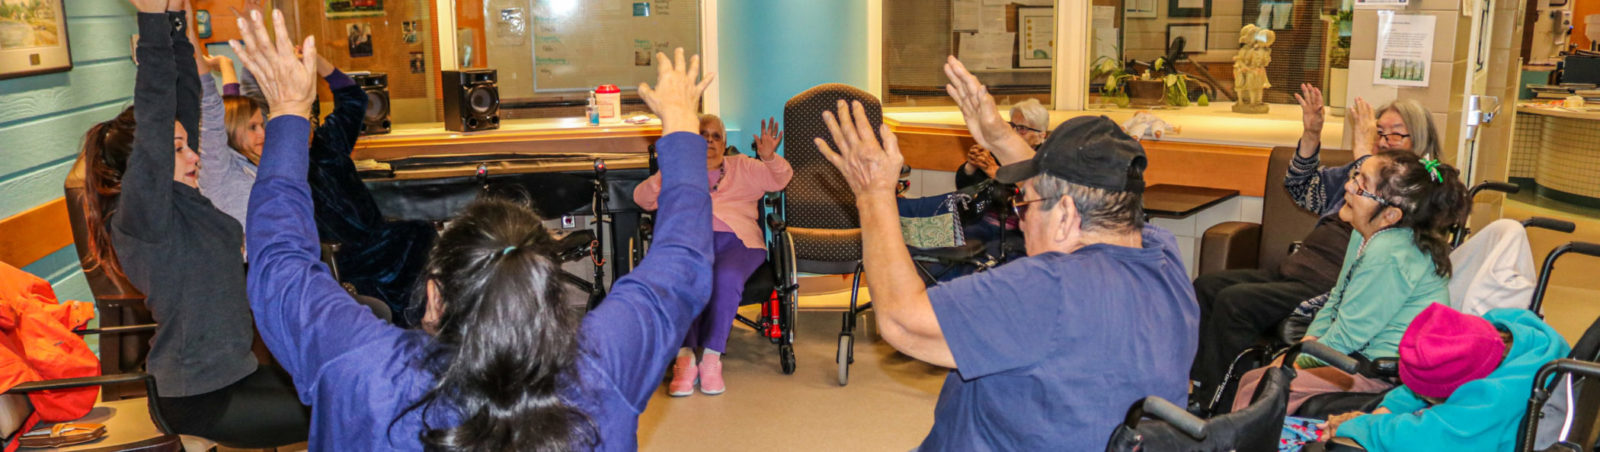 Group image of Elders at our Extended Care Unit doing chair-yoga.